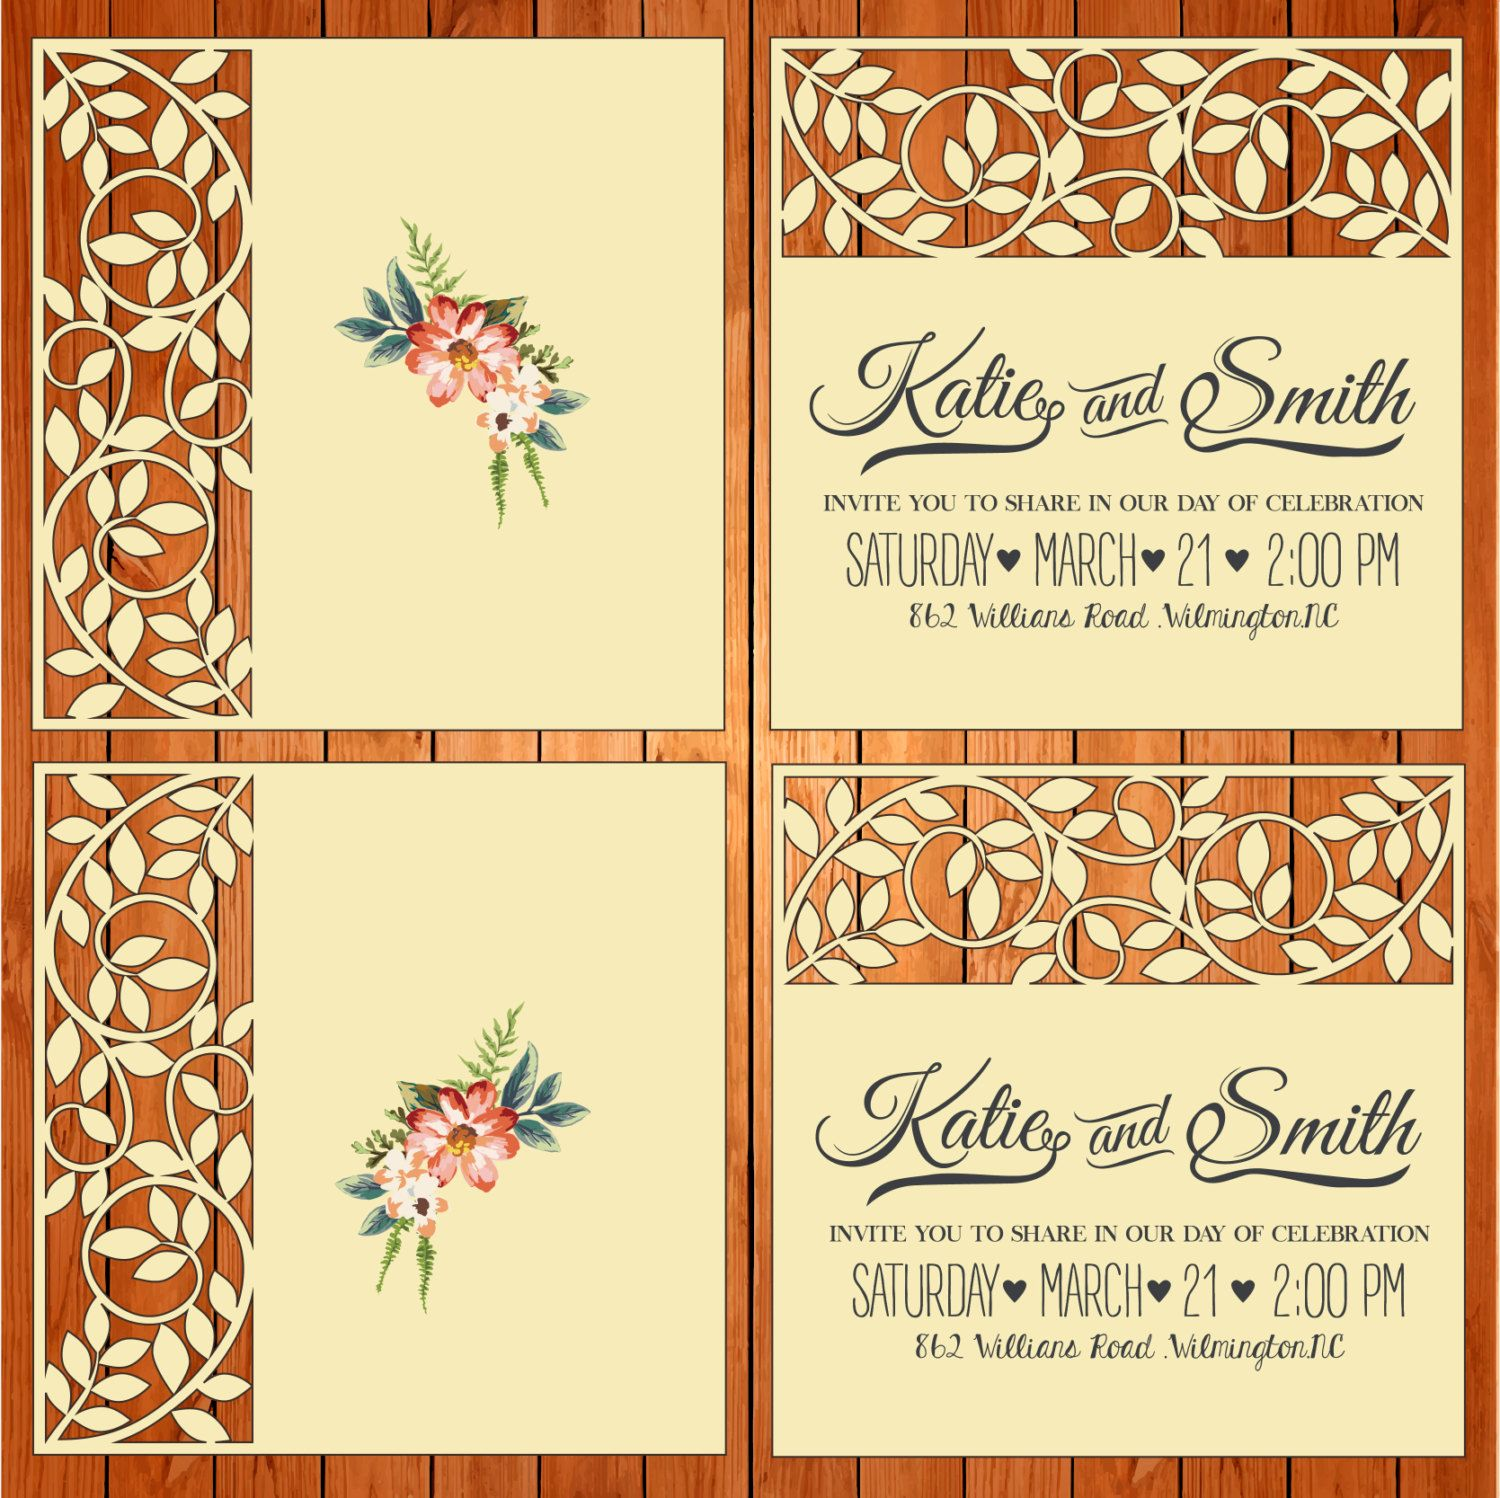 Wedding card invitation template figures leaves studio V3 svg